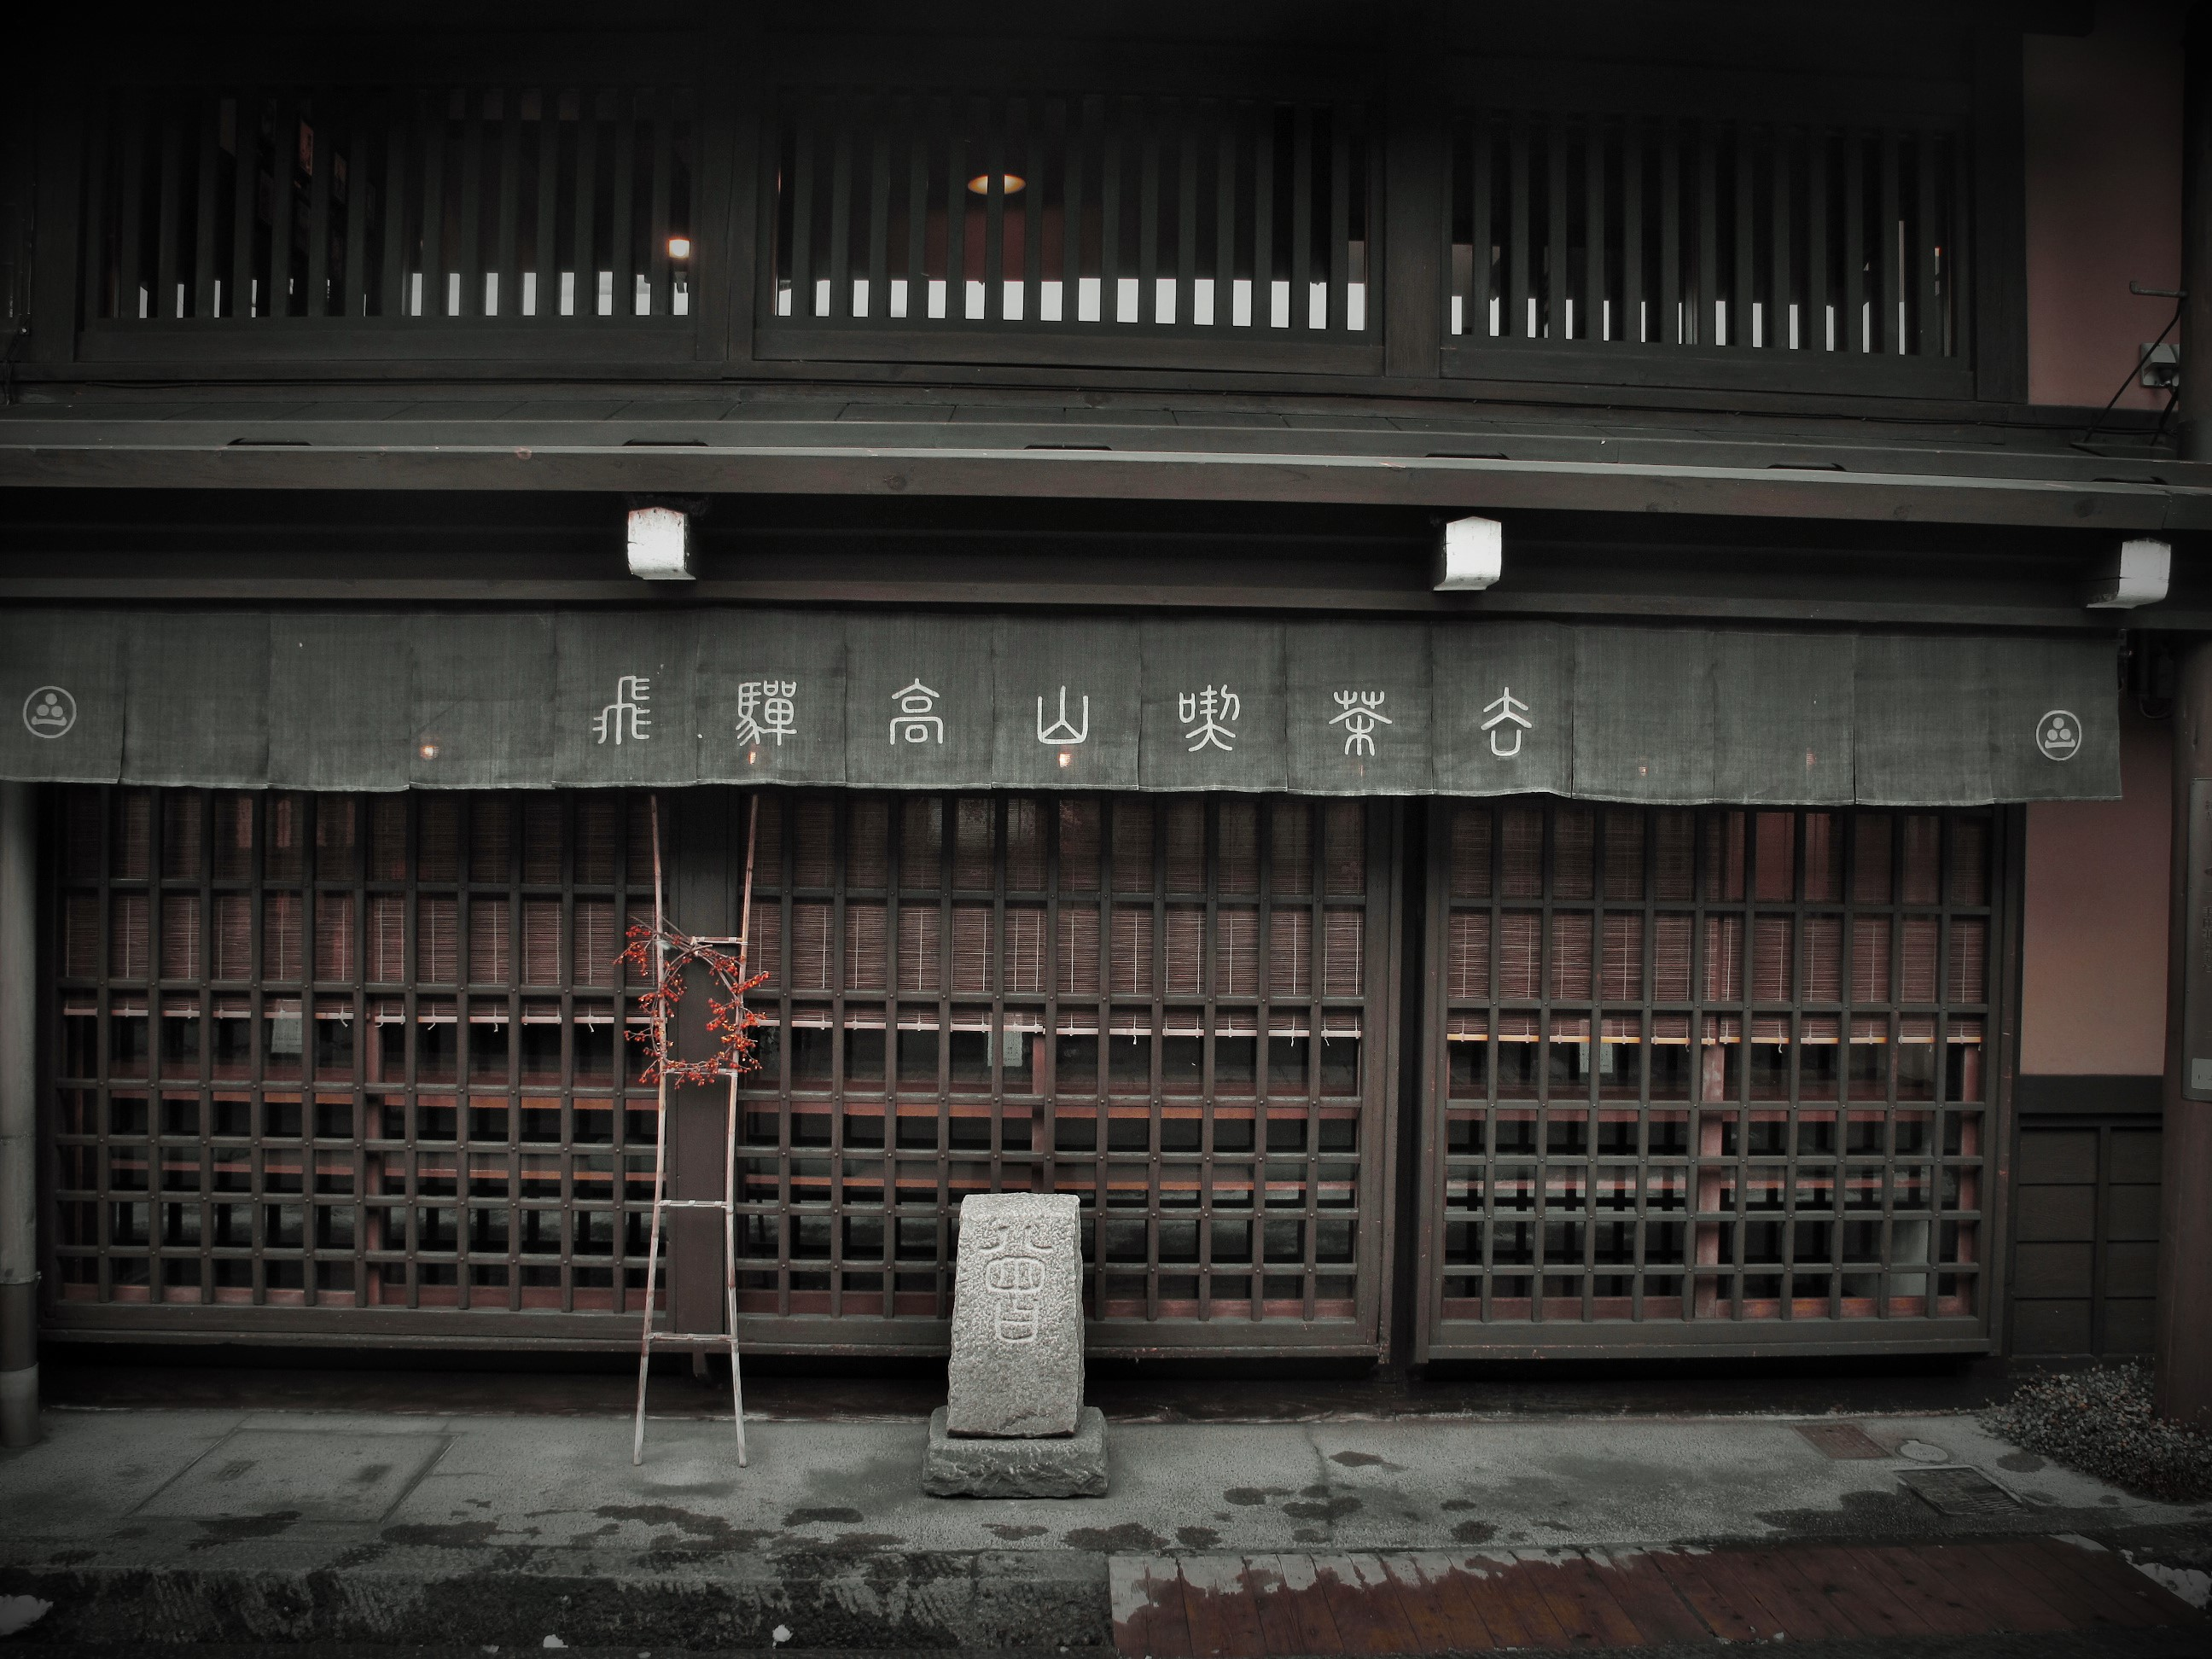 老舗前 some traditional old shop